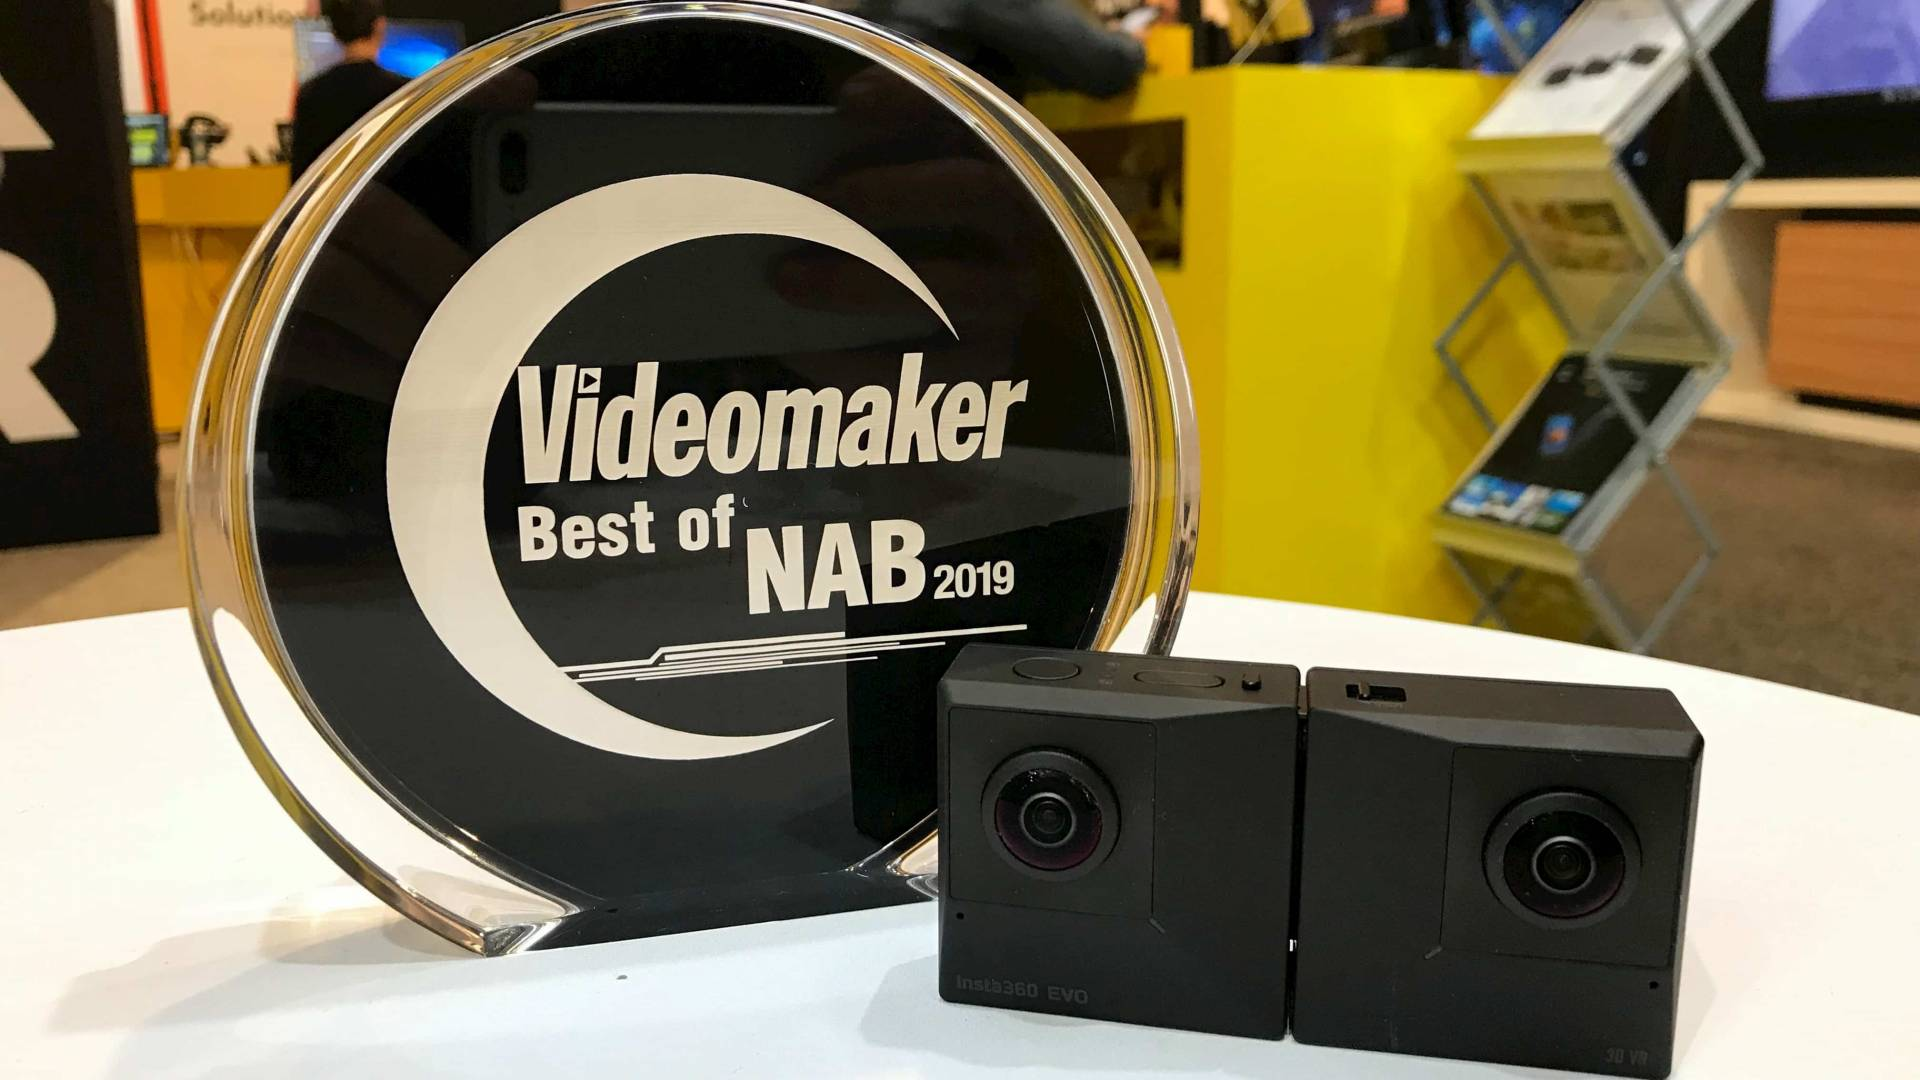 Insta360 EVO with Best of NAB 2019 award